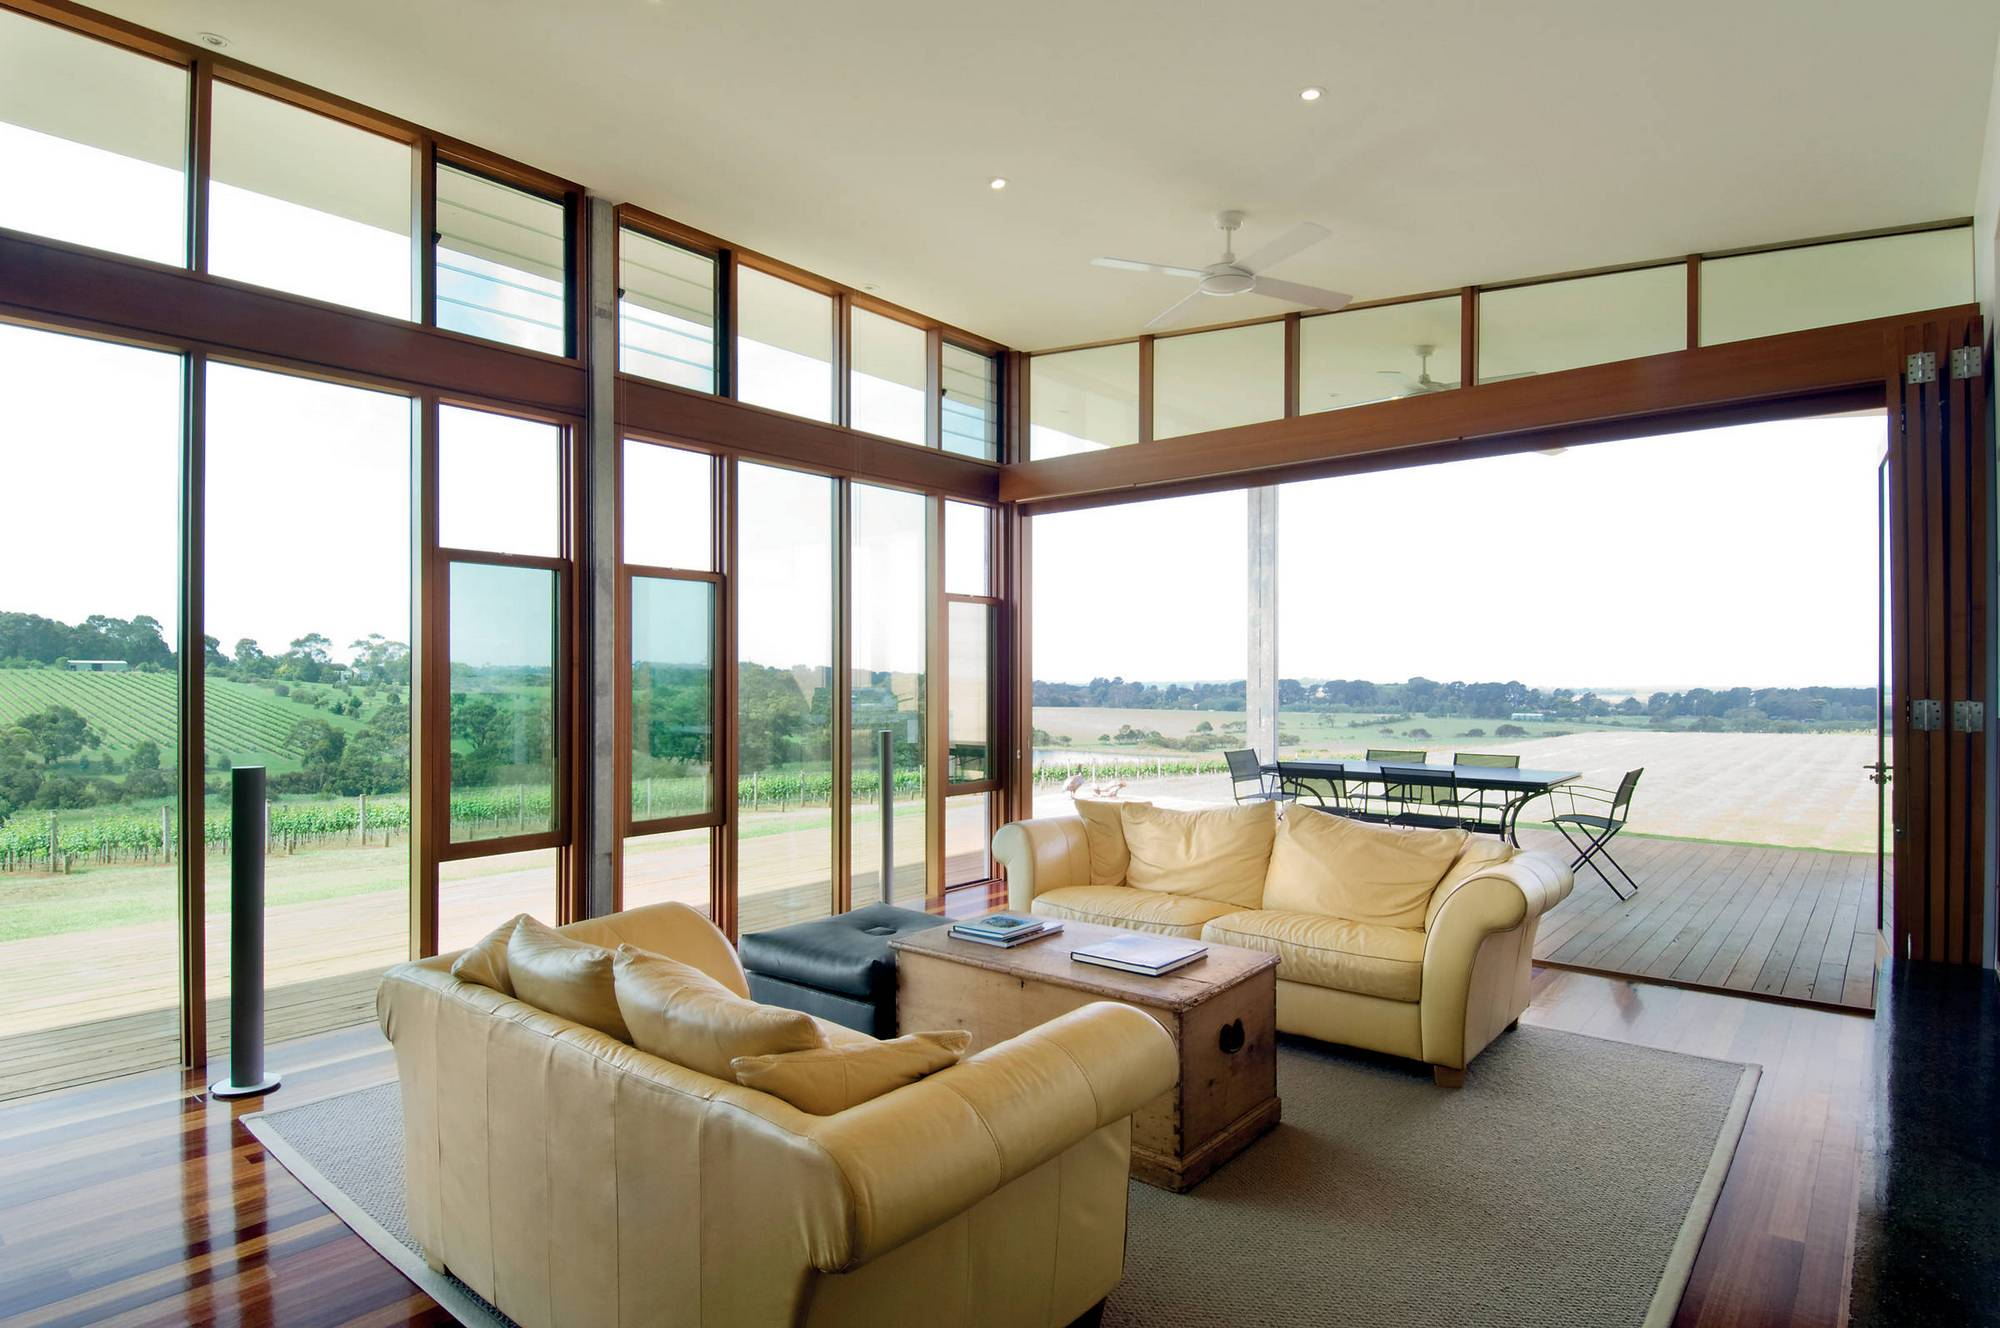 Why Do You Need To Choose Double Glazed Windows For Your Home?